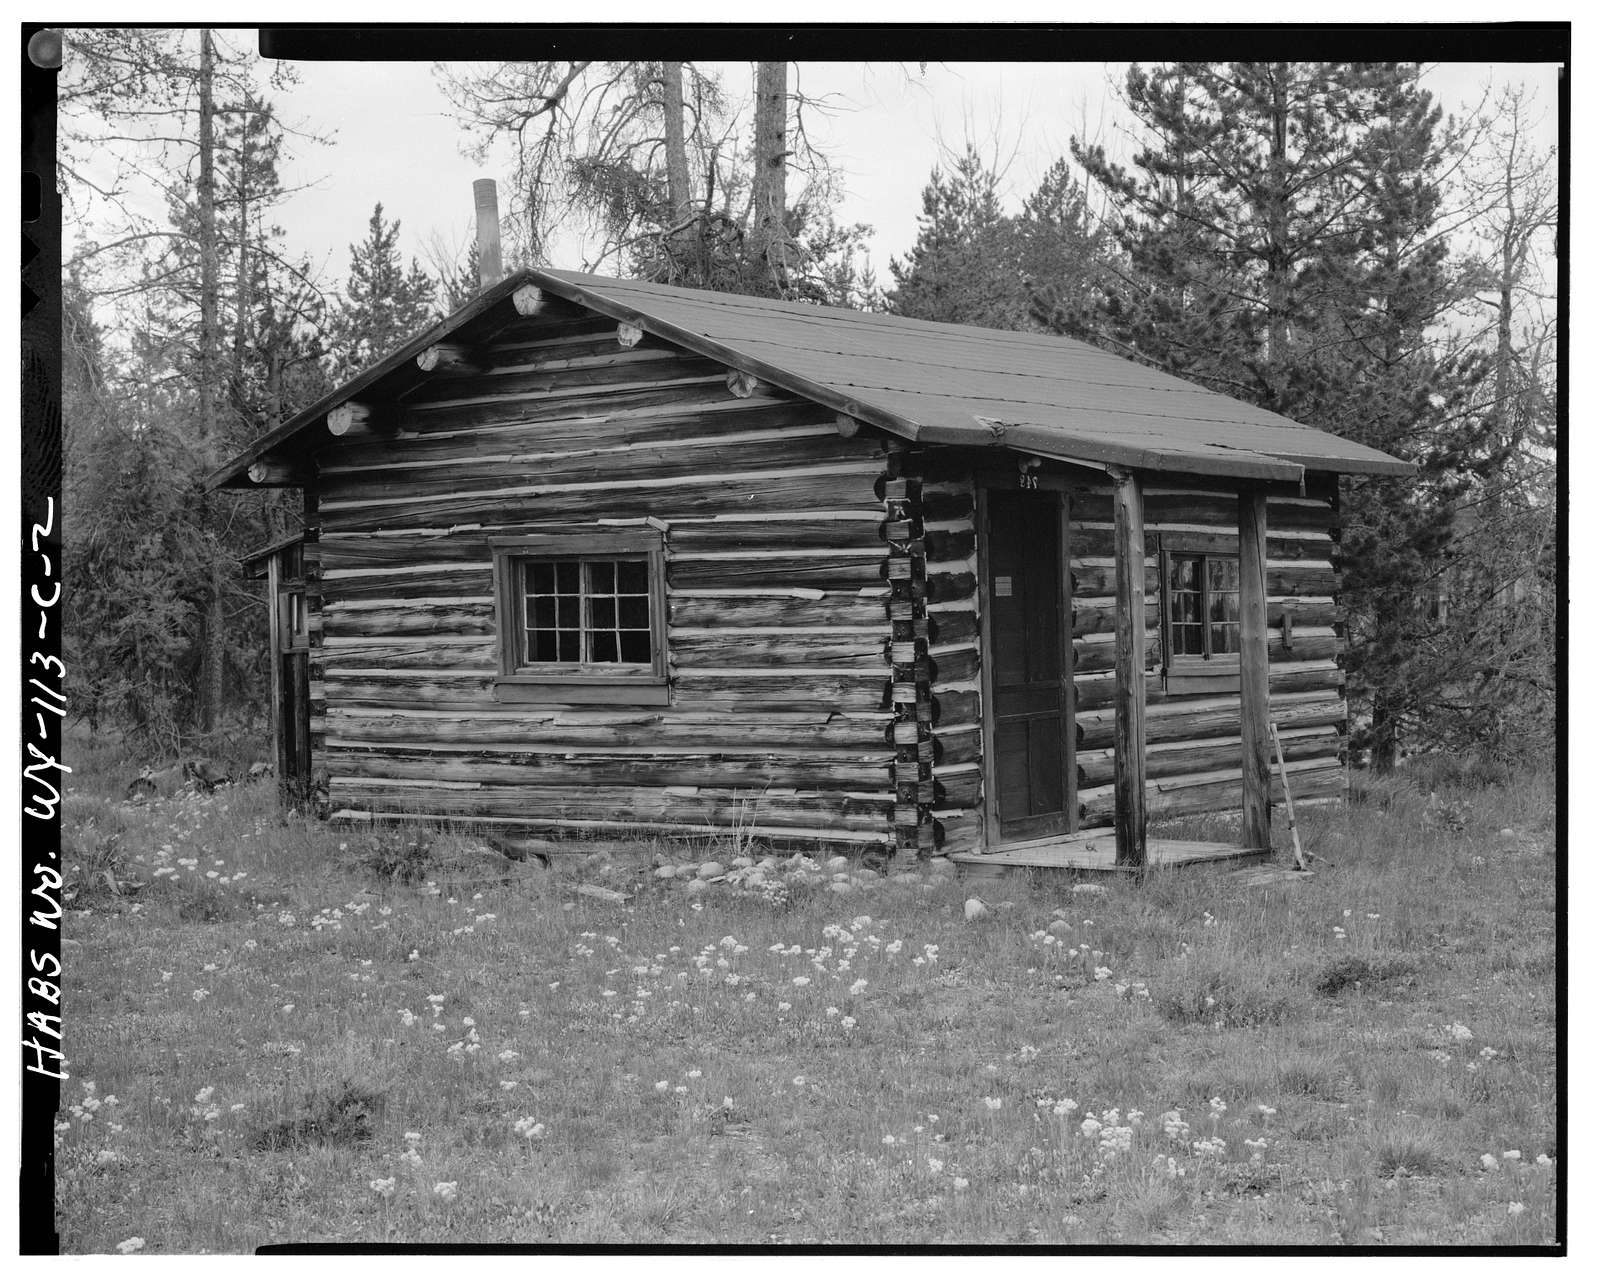 Geraldine Lucas Homestead, Naomi Colwell Cabin, West bank Cottonwood Creek, 2.5 miles downstream from Jenny Lake, Moose, Teton County, WY